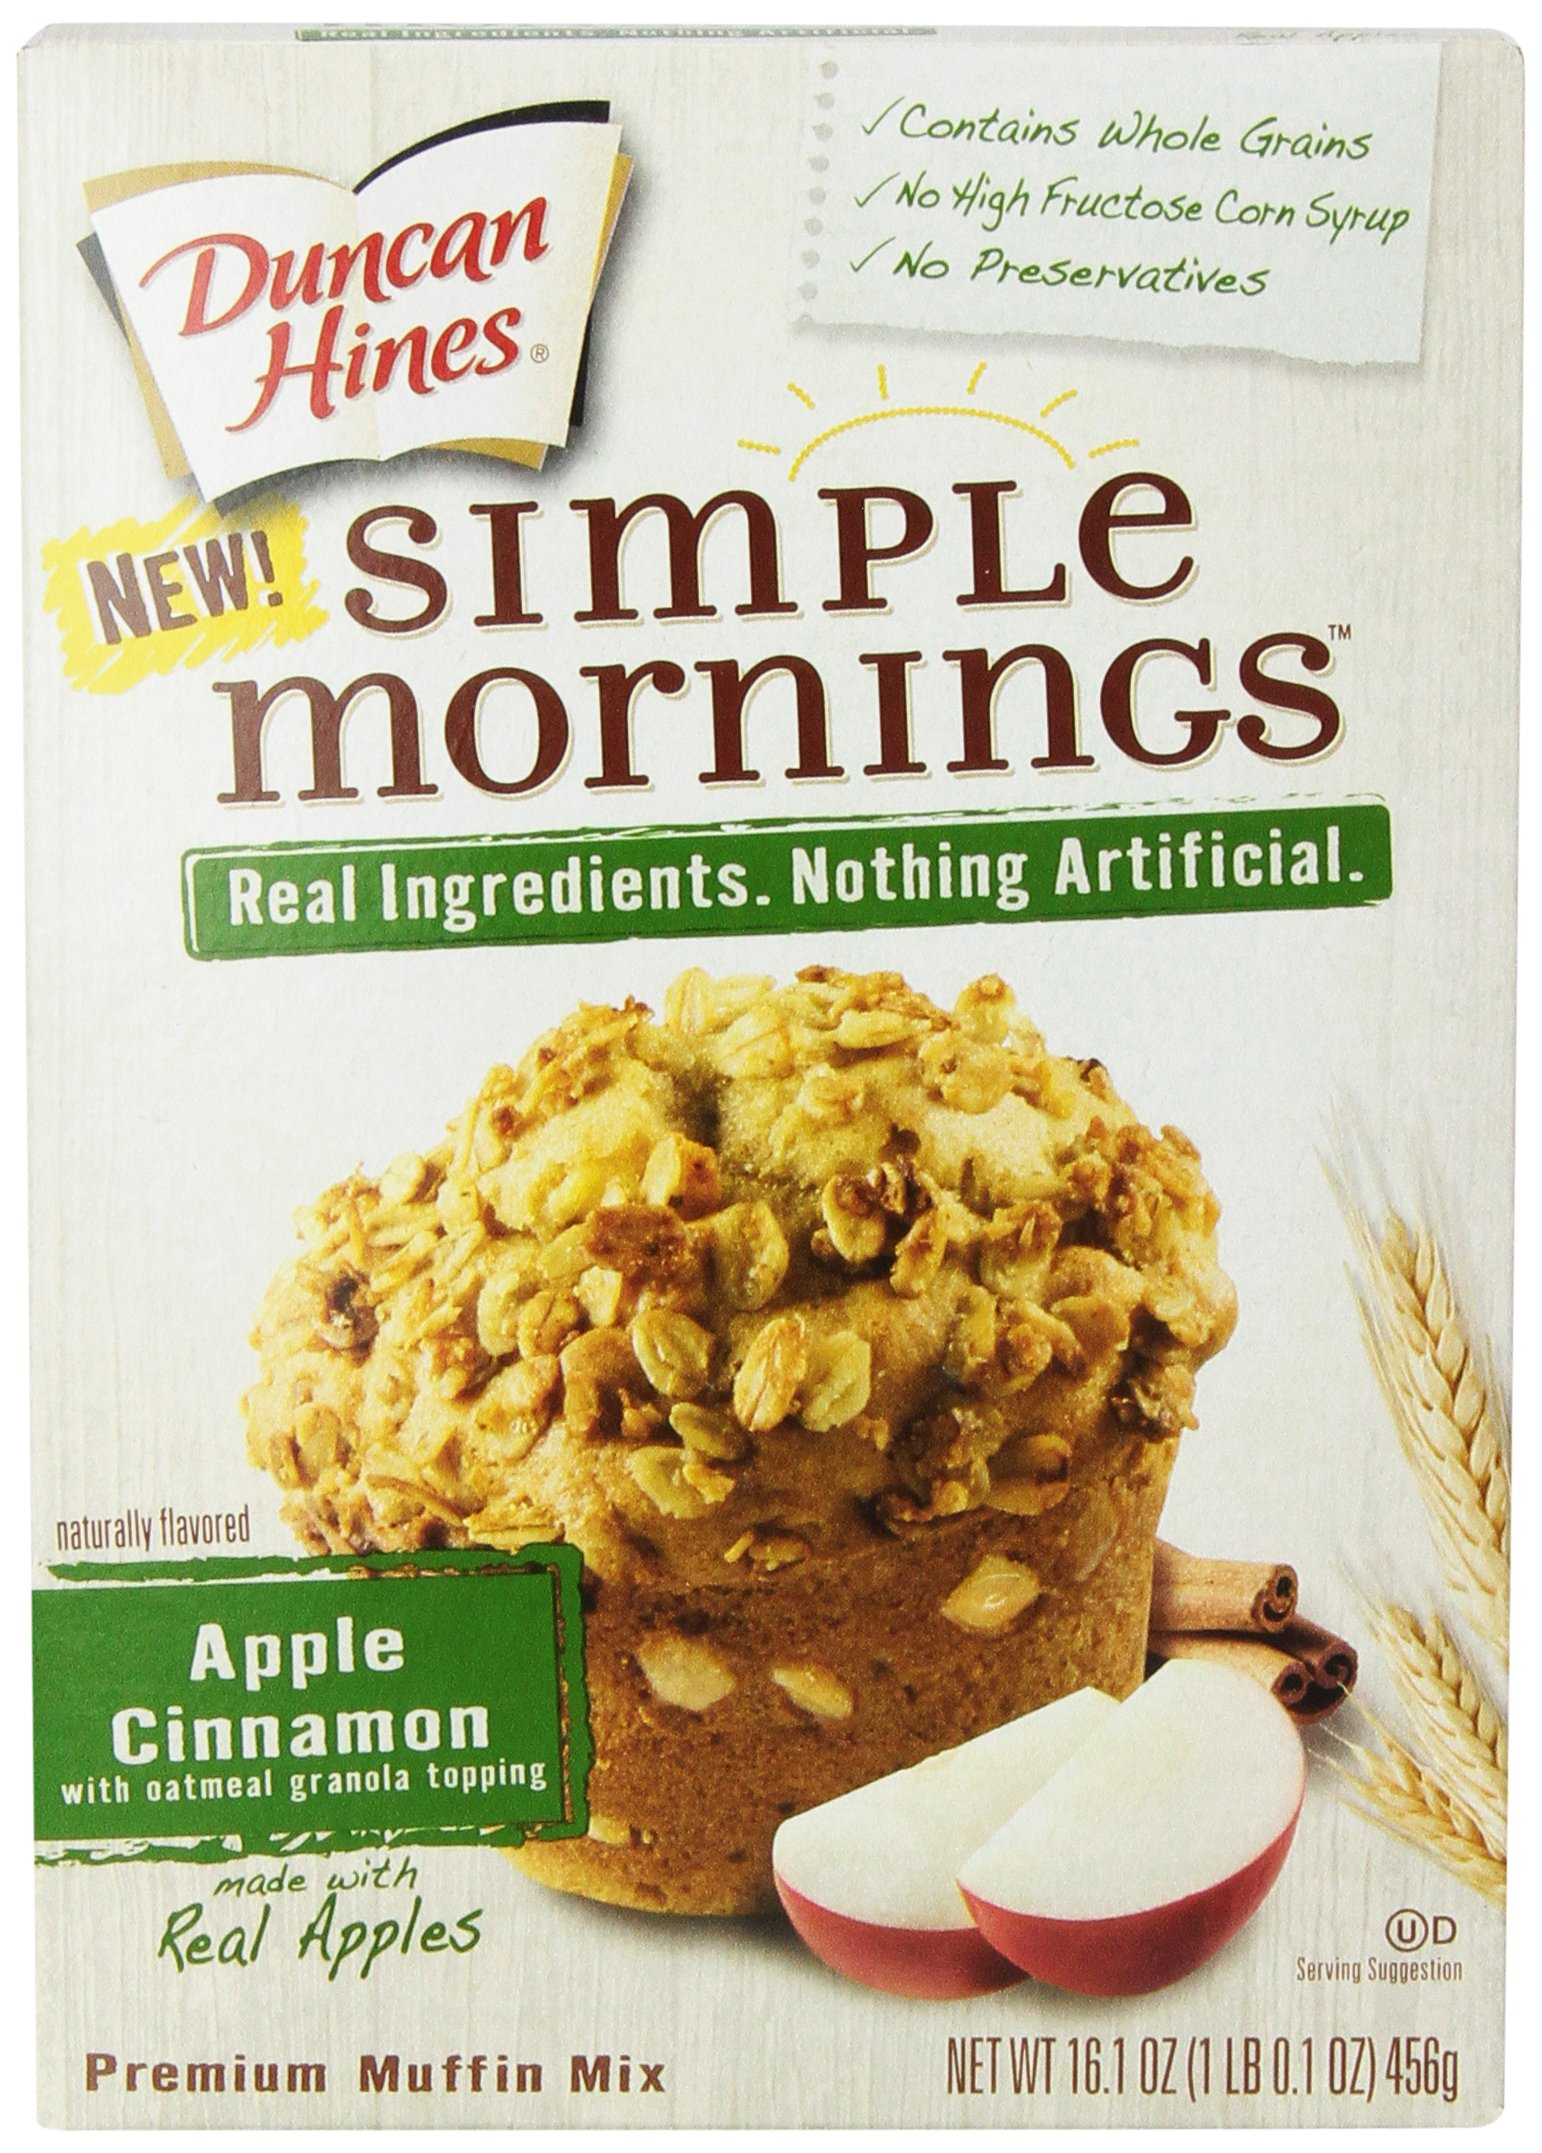 Duncan Hines Simple Mornings Oatmeal Muffin Mix, Apple Cinnamon, 16.1-Ounce (Pack of 12) by Duncan Hines (Image #1)